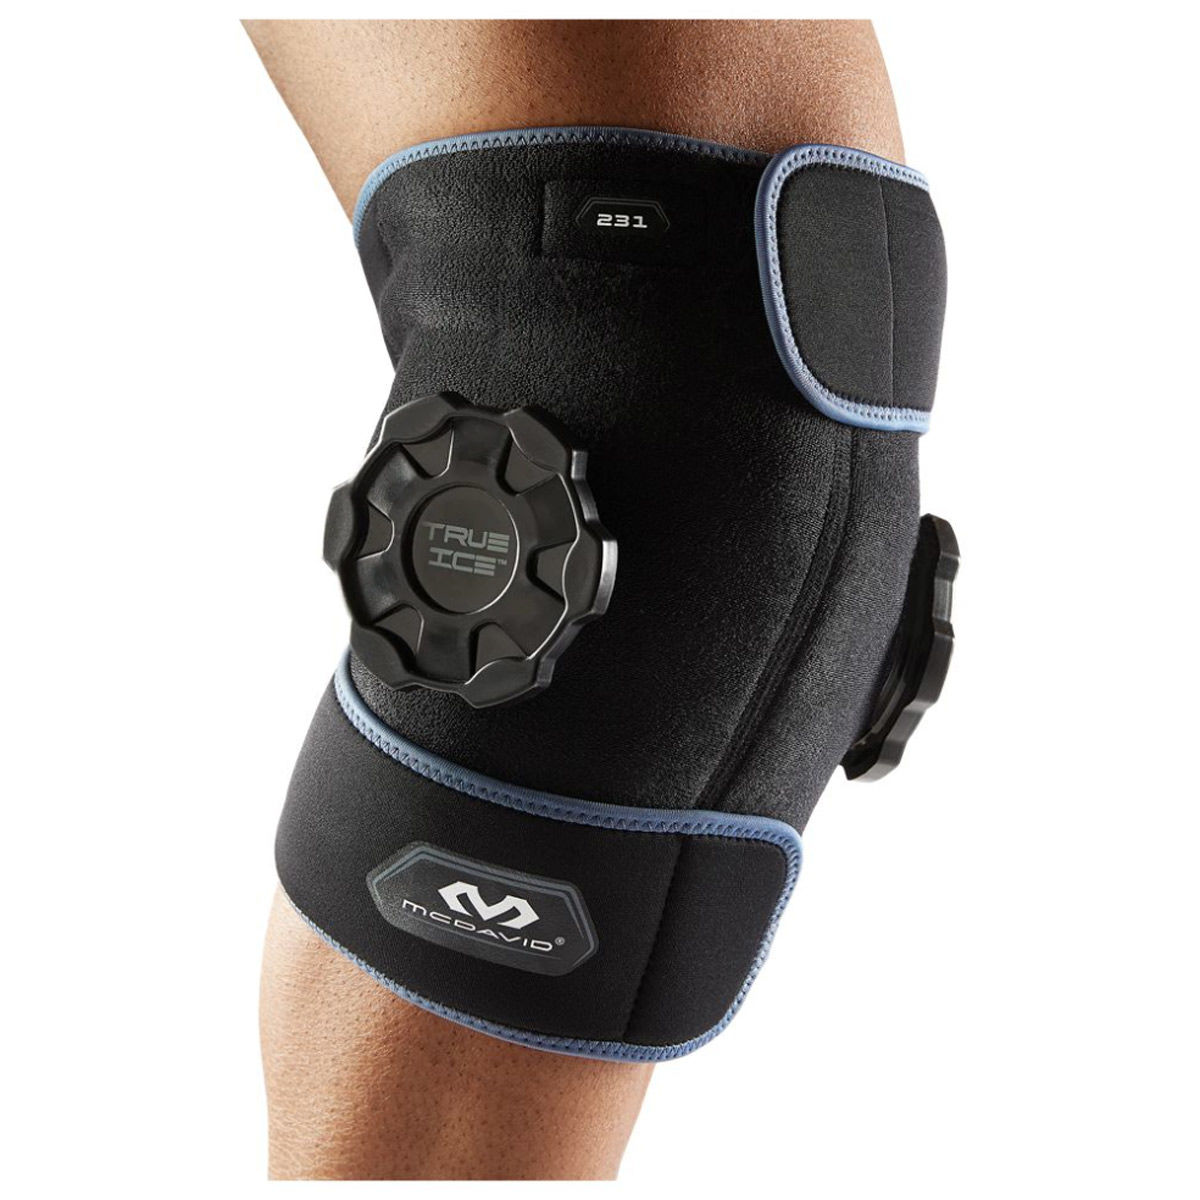 McDavid True Ice Therapy Knee Wrap